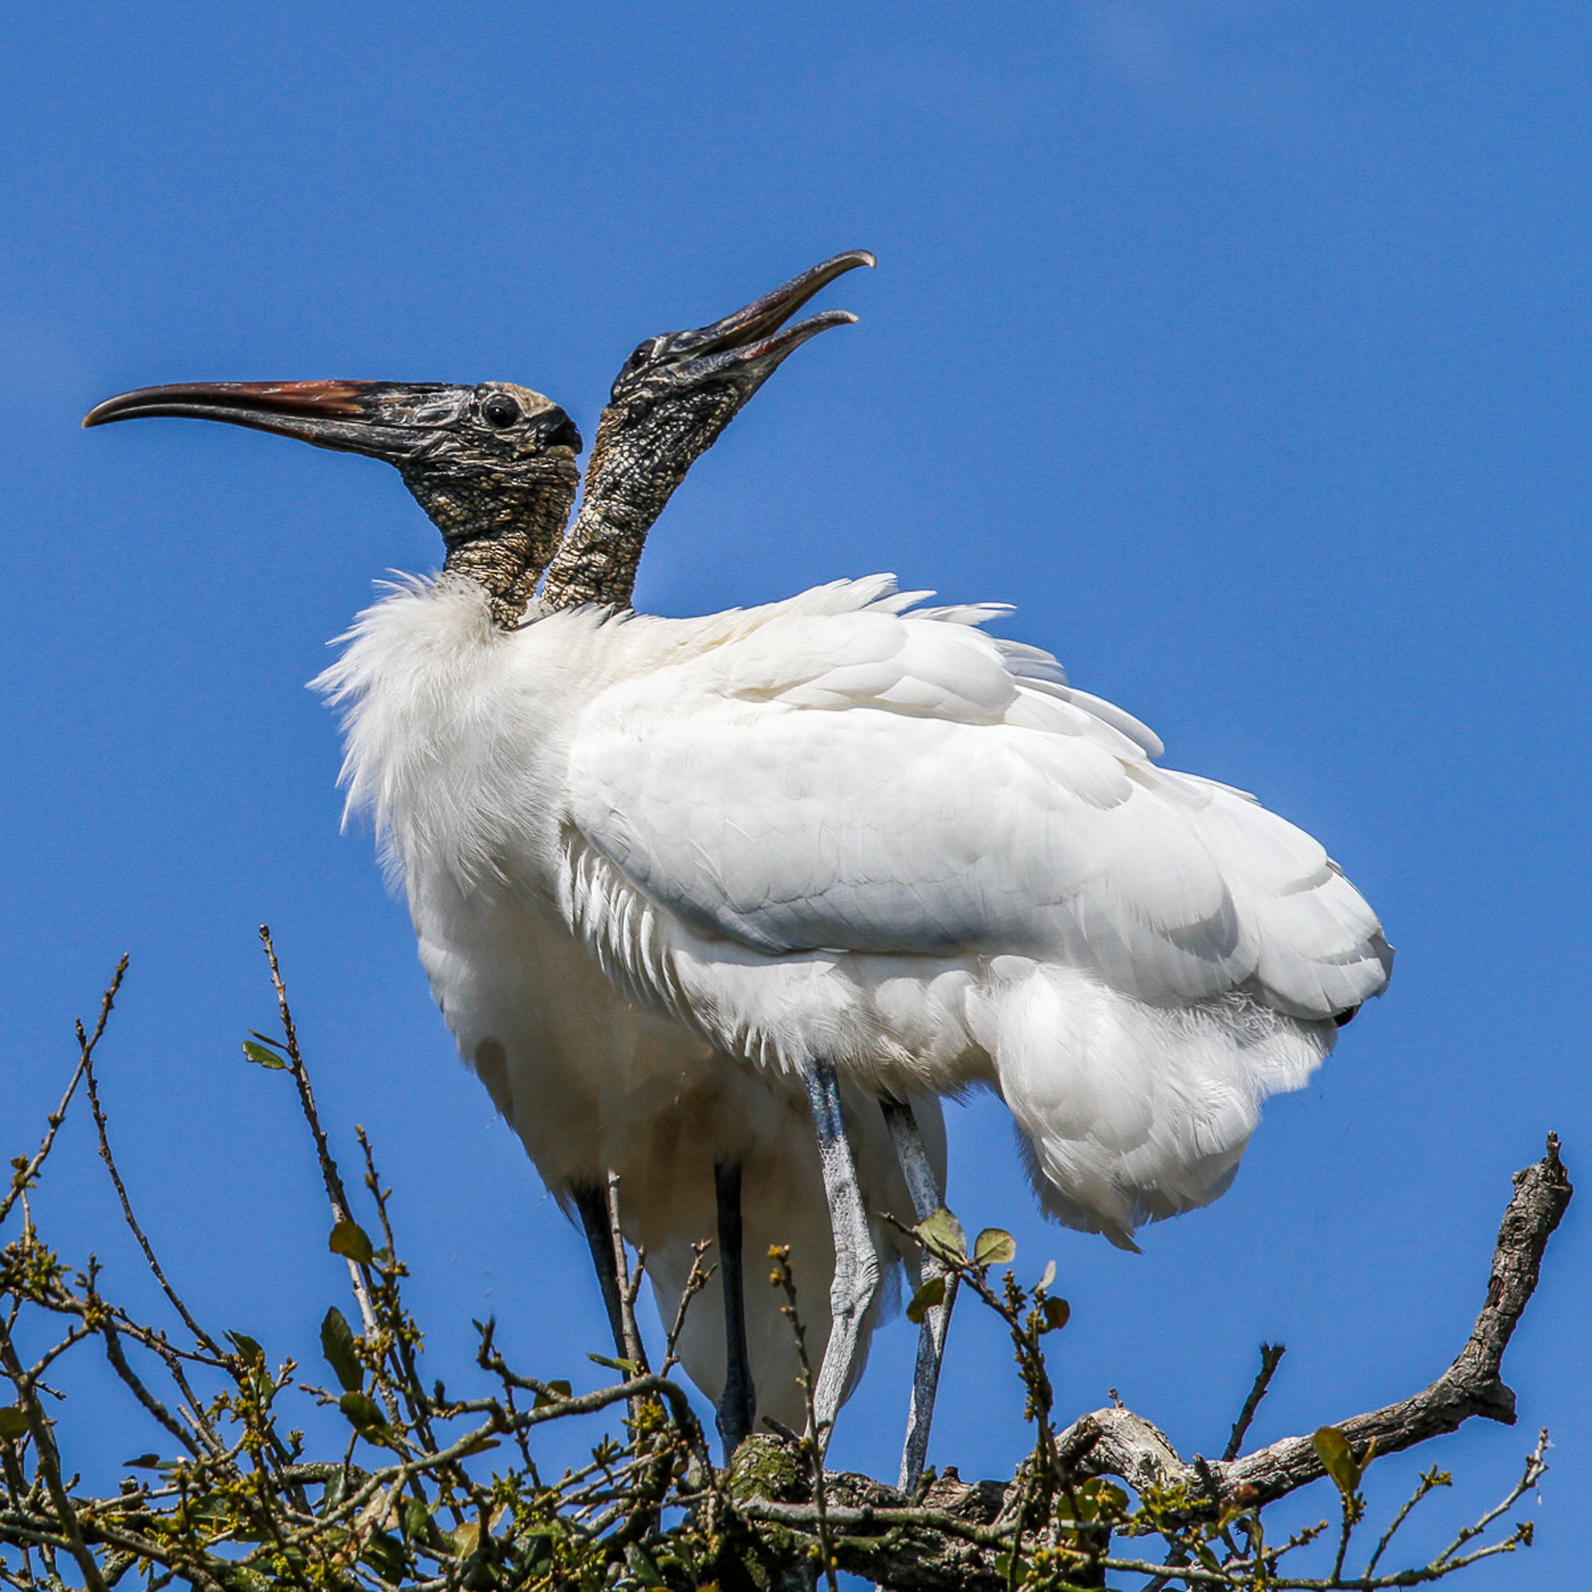 Two wood storks